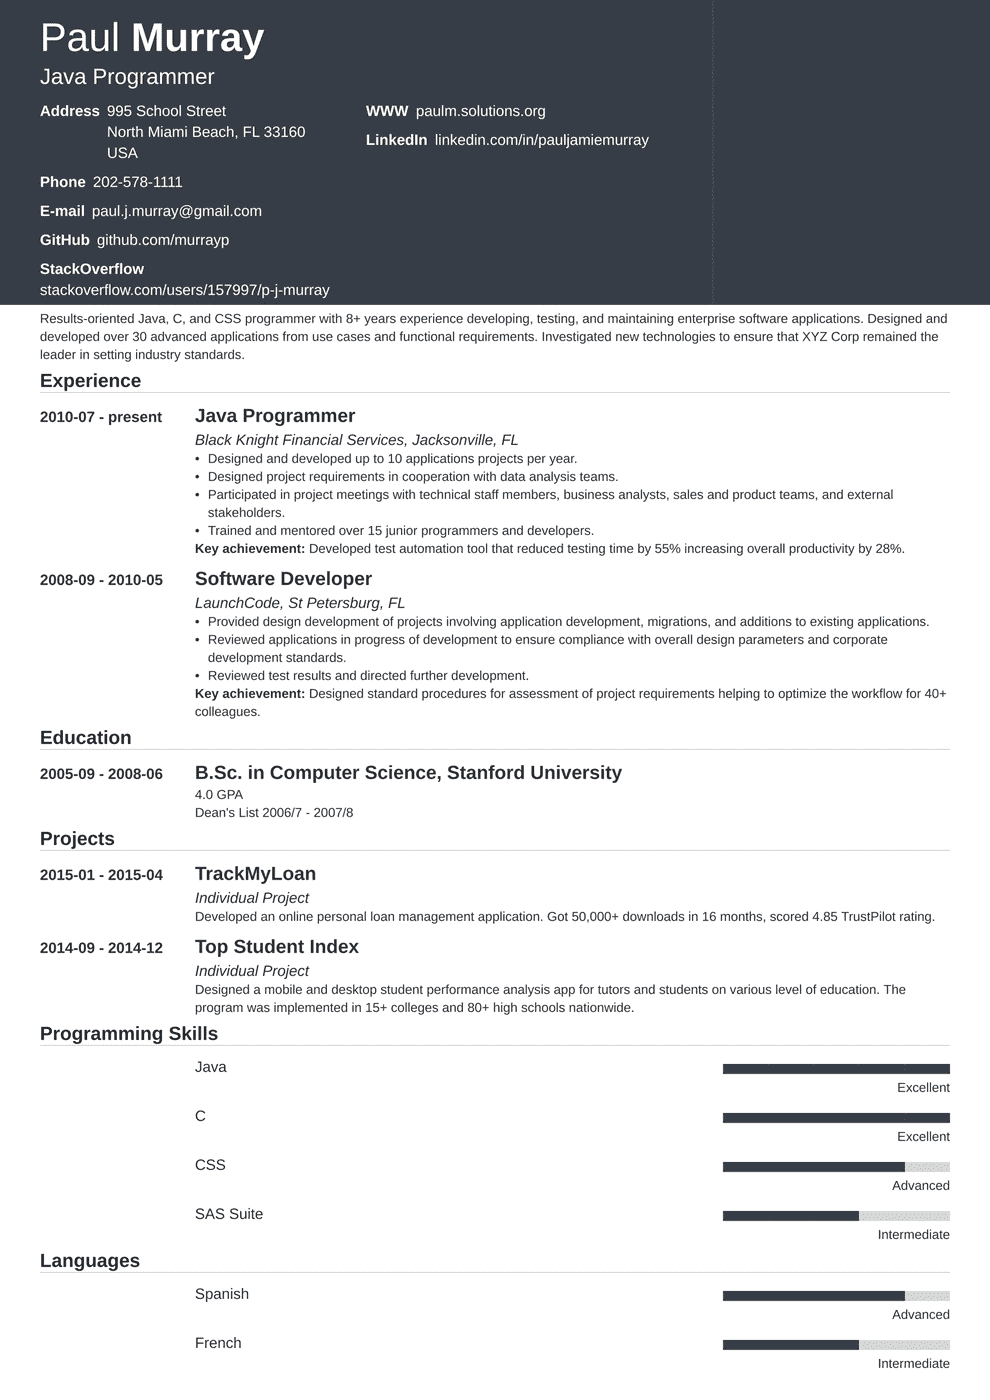 Programmer Resume: Sample & Complete Guide [20+ Examples]